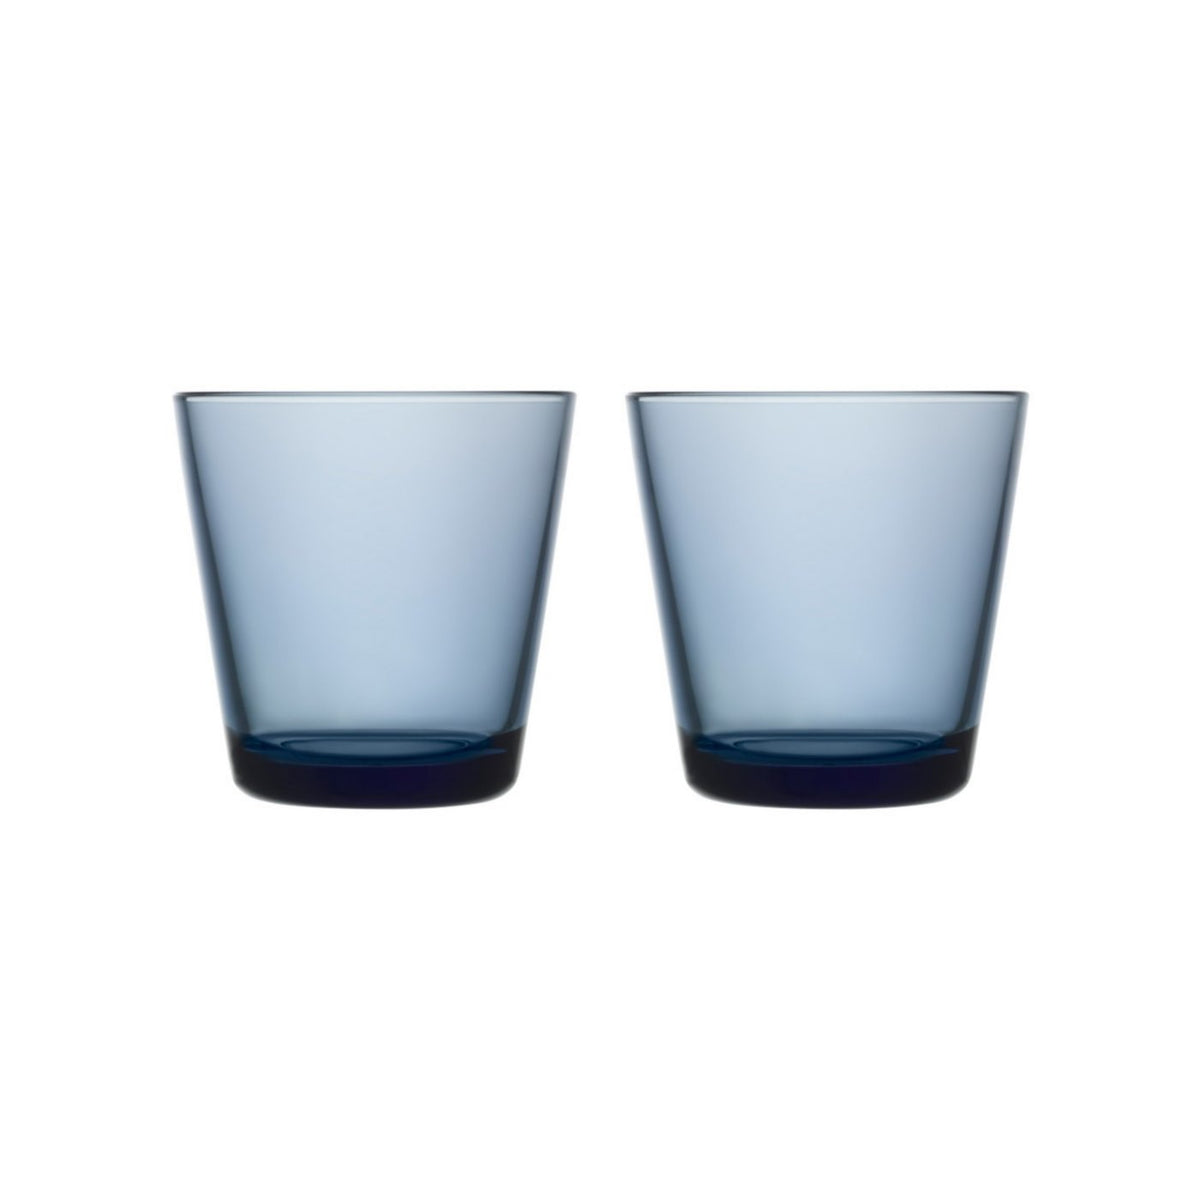 Kartio Tumbler 7 oz, set of 2